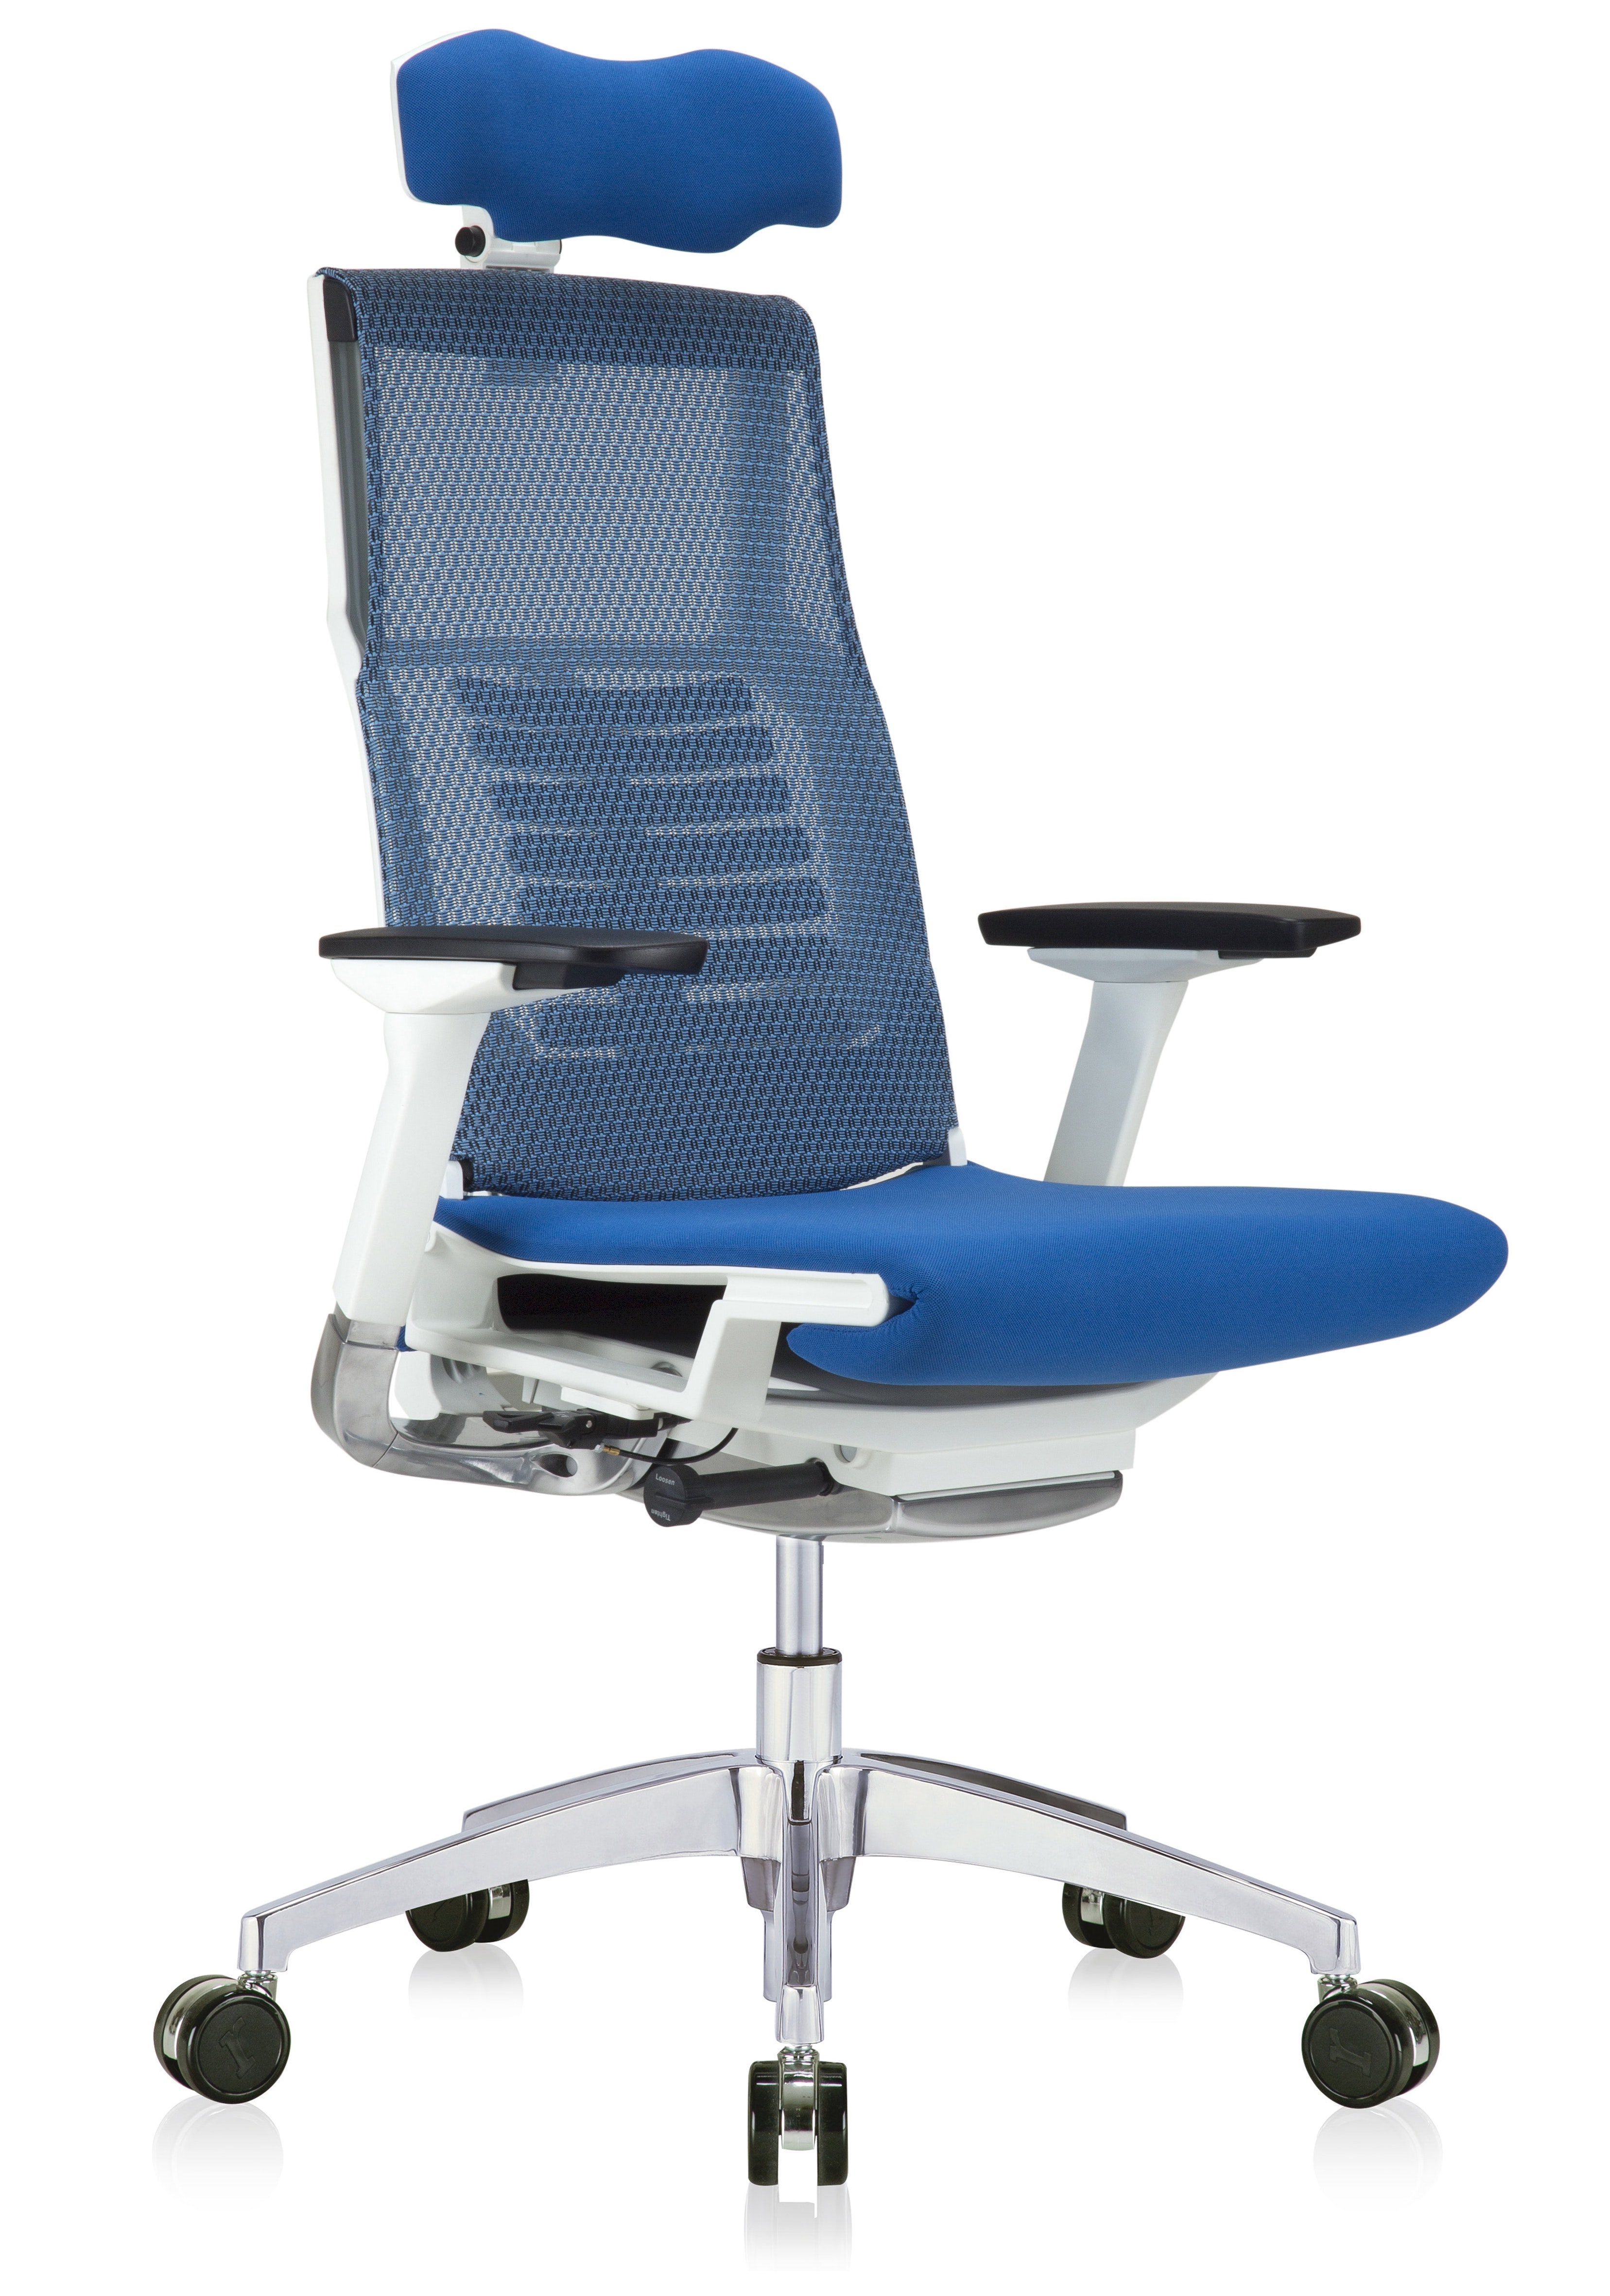 powerfit mesh back chair with blue fabric seat and headrest